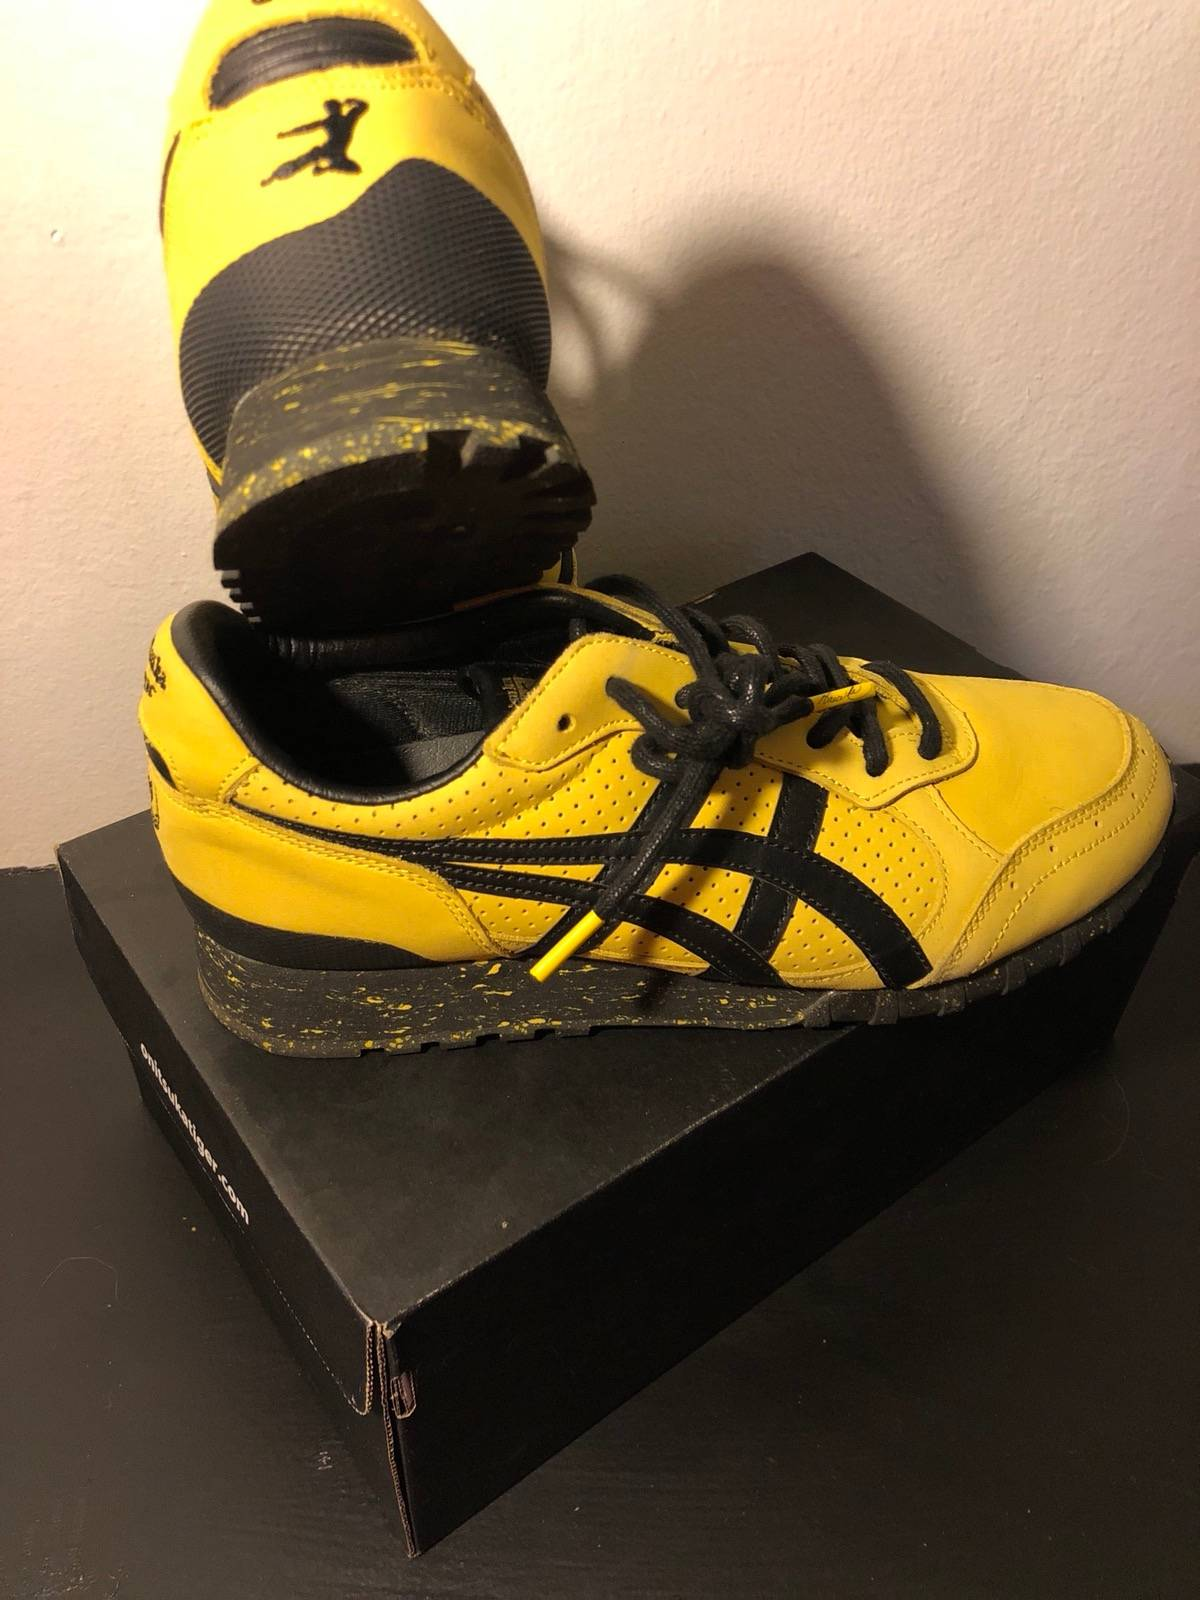 new product 2bec3 90aa7 Asics × Bait × Bruce Lee Bruce Lee X Bait Onitsuka Tiger Game Of Death  Shoes Size 8 $120